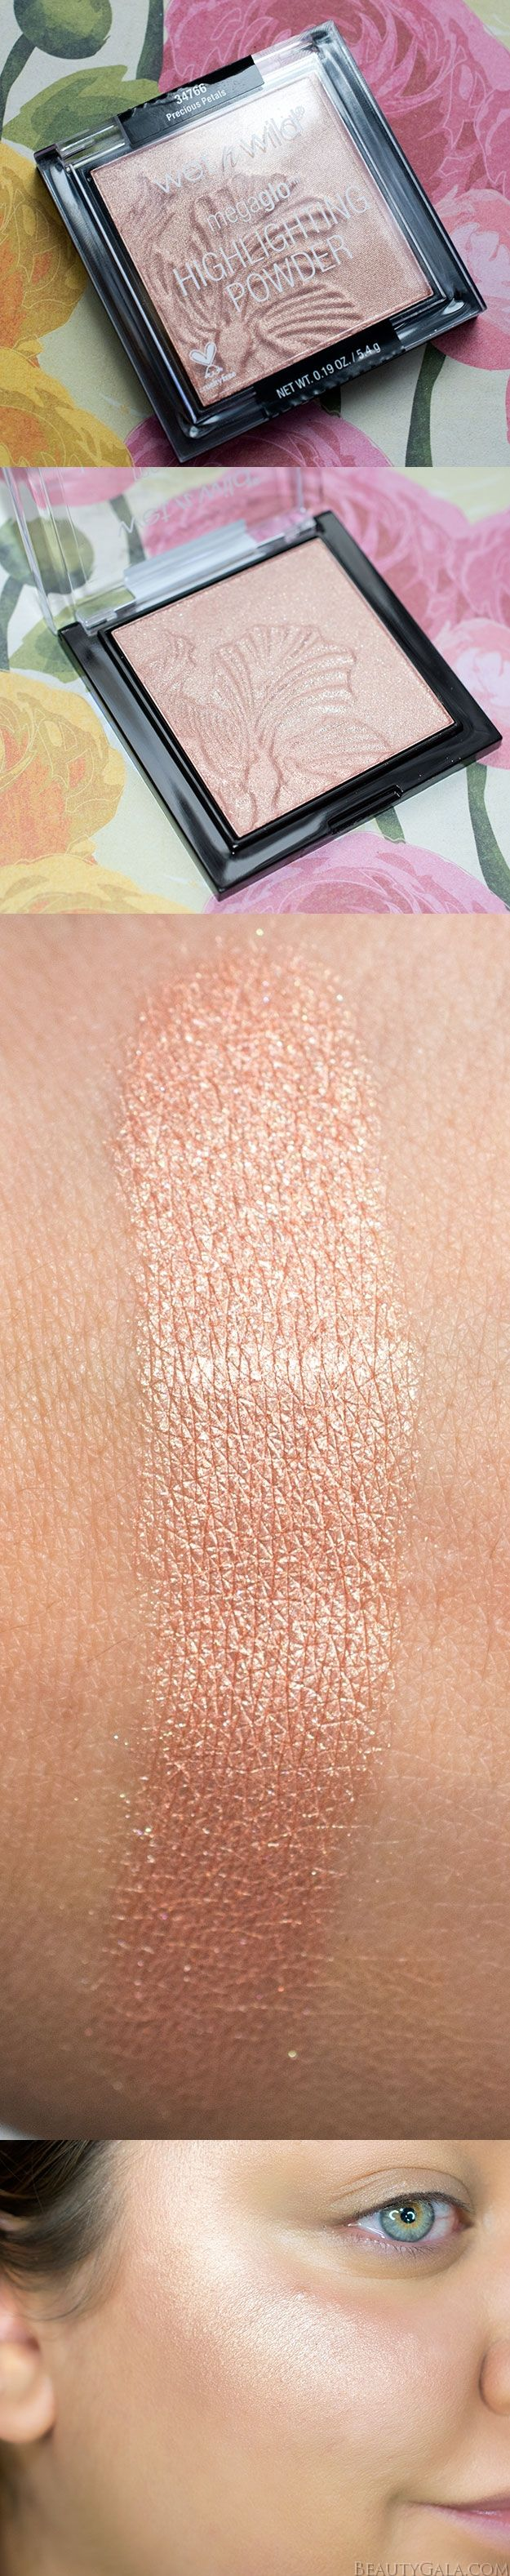 "Wet n Wild Highlighting Powder in ""Precious Petals"""